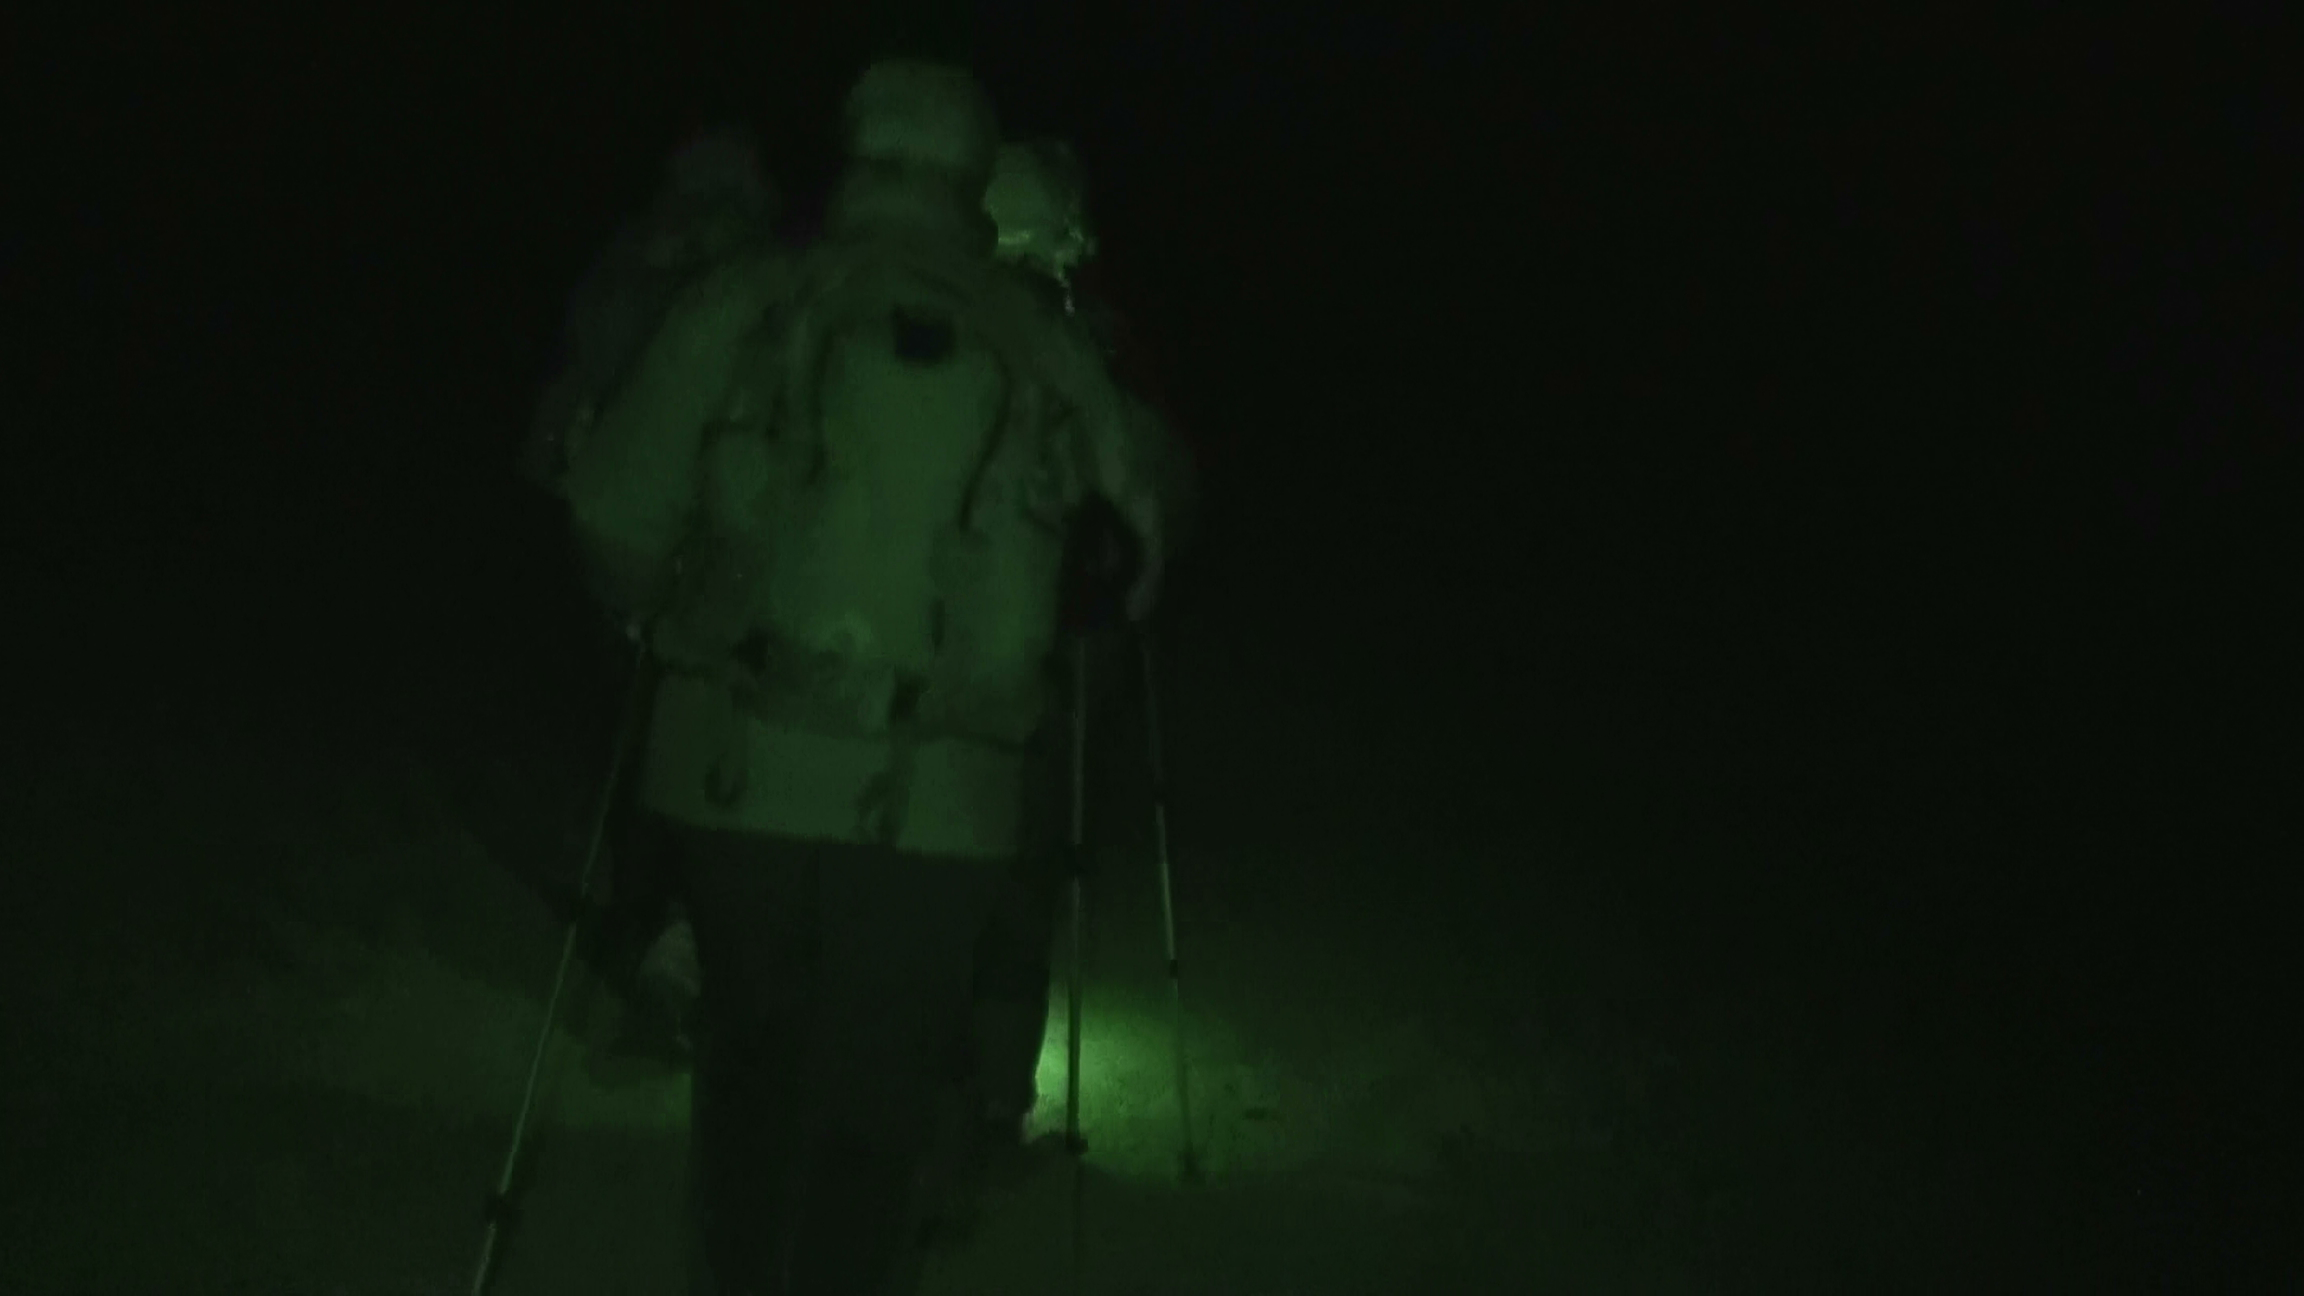 Hiking to the summit at midnight